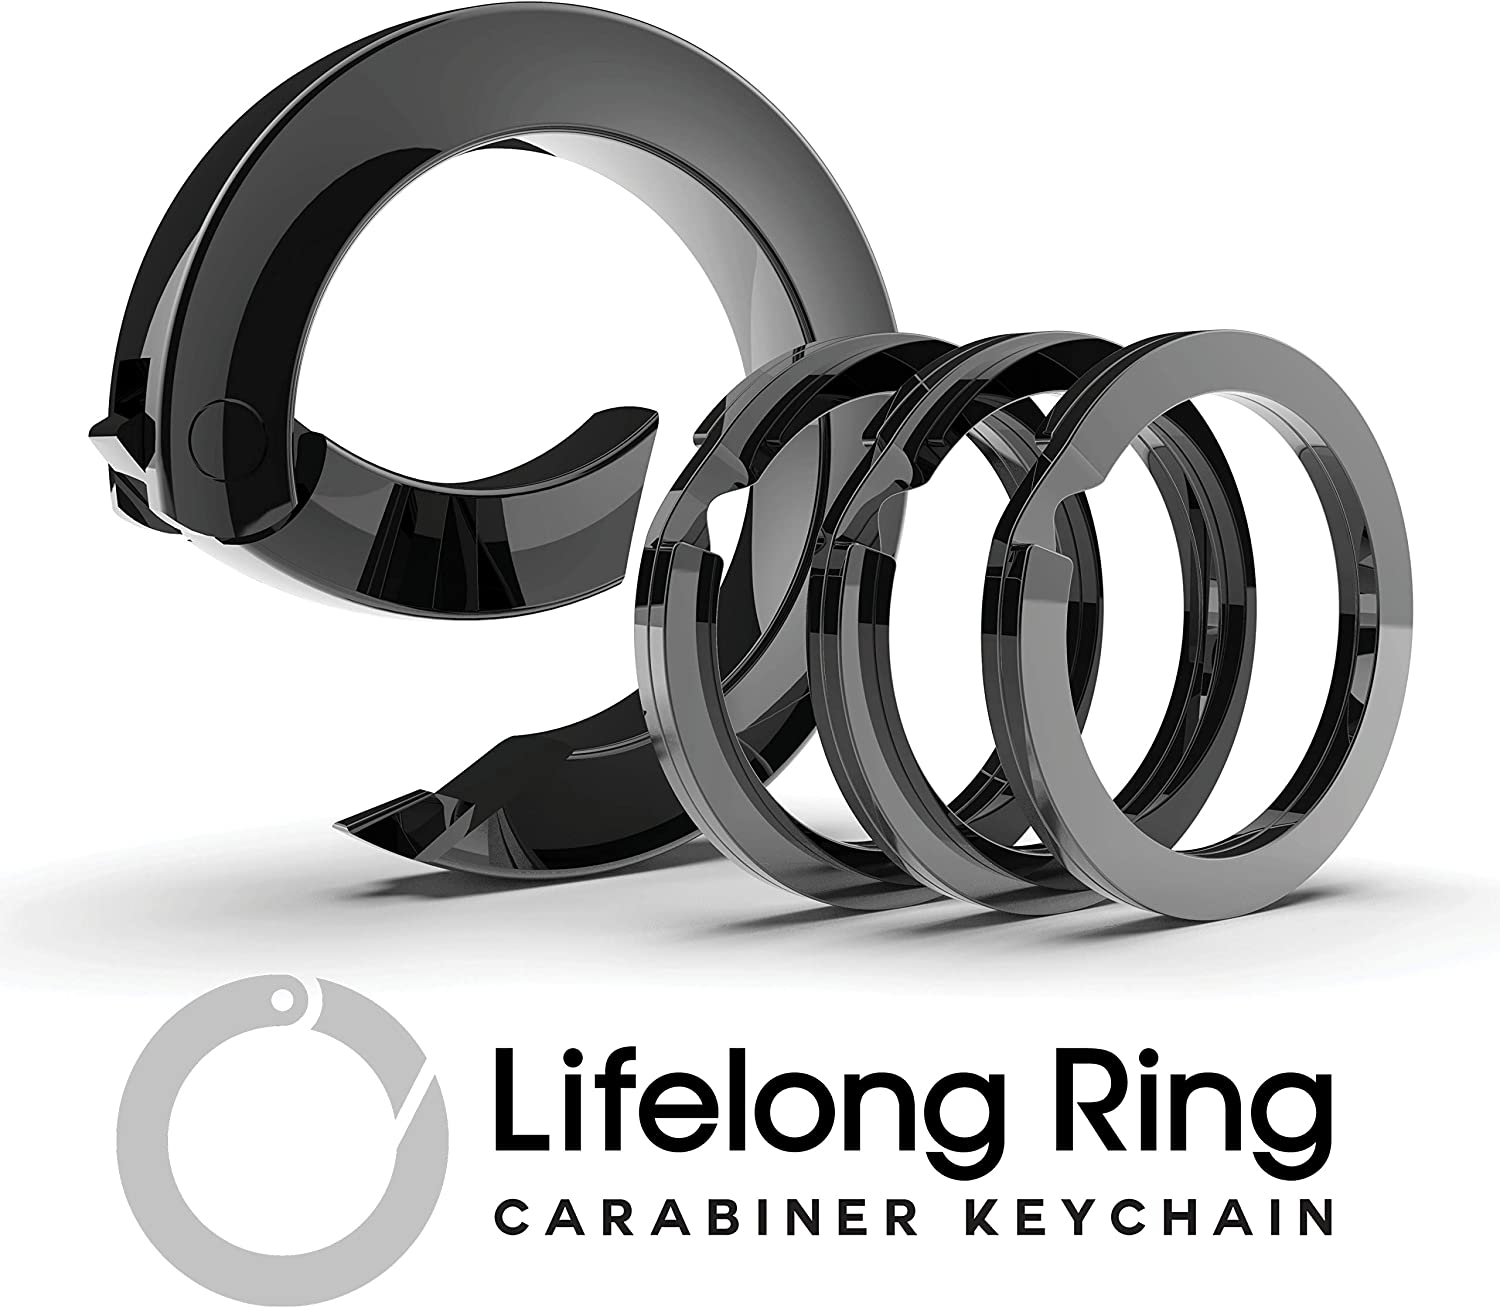 Lifelong Ring Fashion Carabiner Keychain w/ 3 Matching Key Rings Set, 300 Series Universal Size, Pure Round Circle Design, Strong, Solid Metal Keychain Clip, Key Clip, Key Organizer